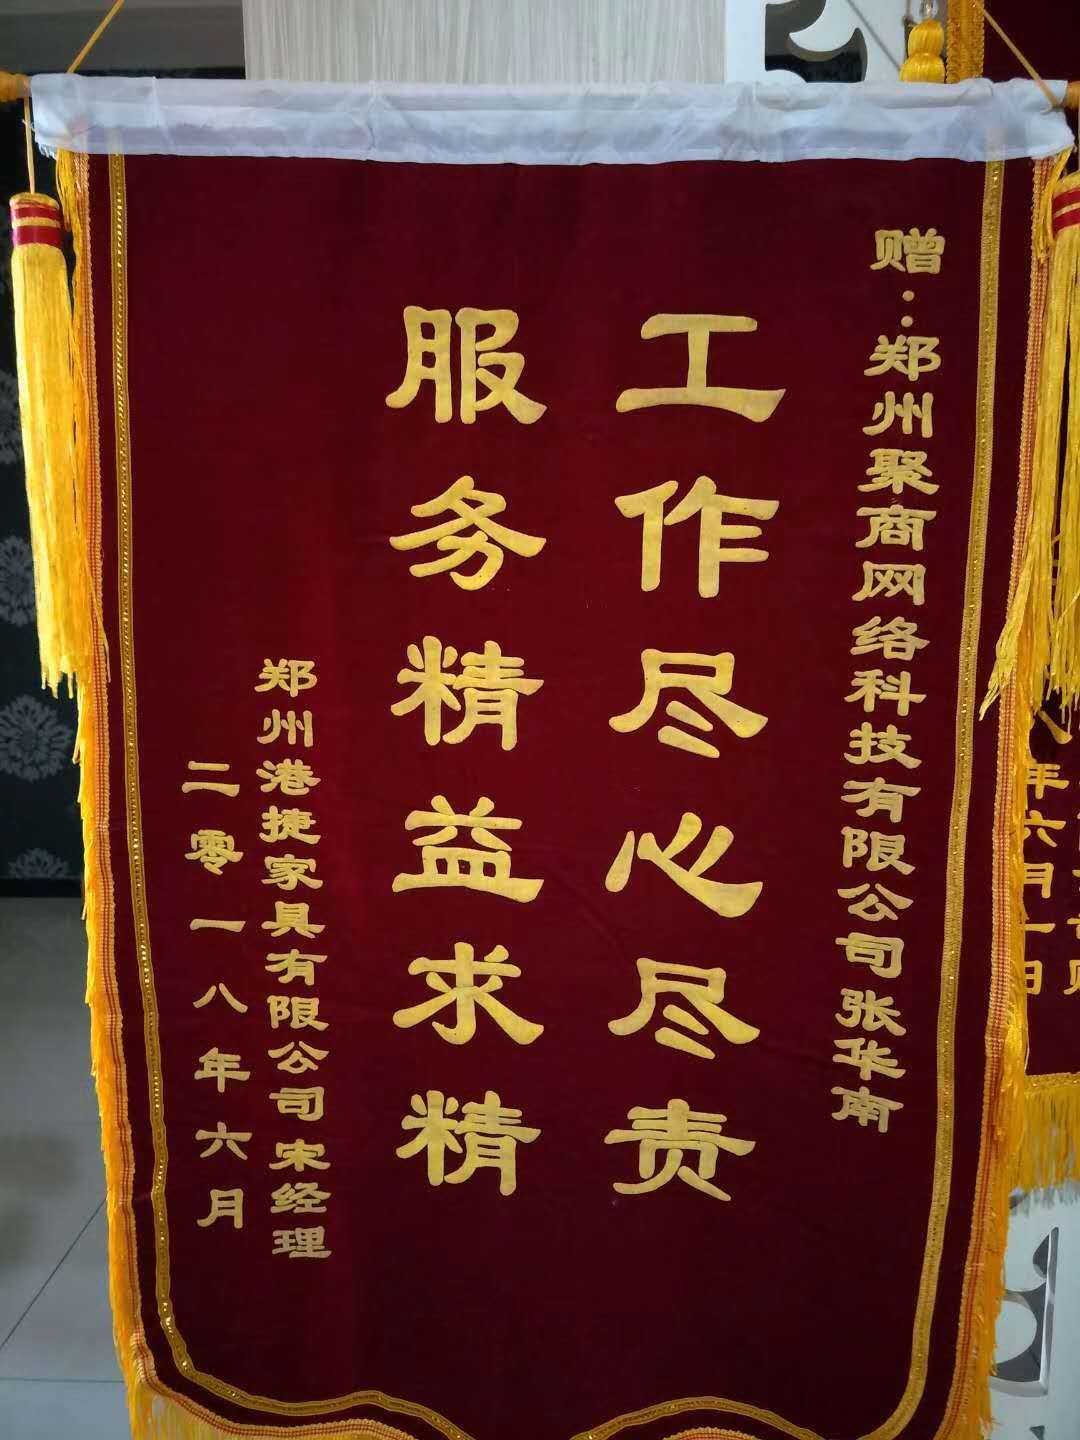 Pennants presented by Zhengzhou Gangjie Furniture Co., Ltd.